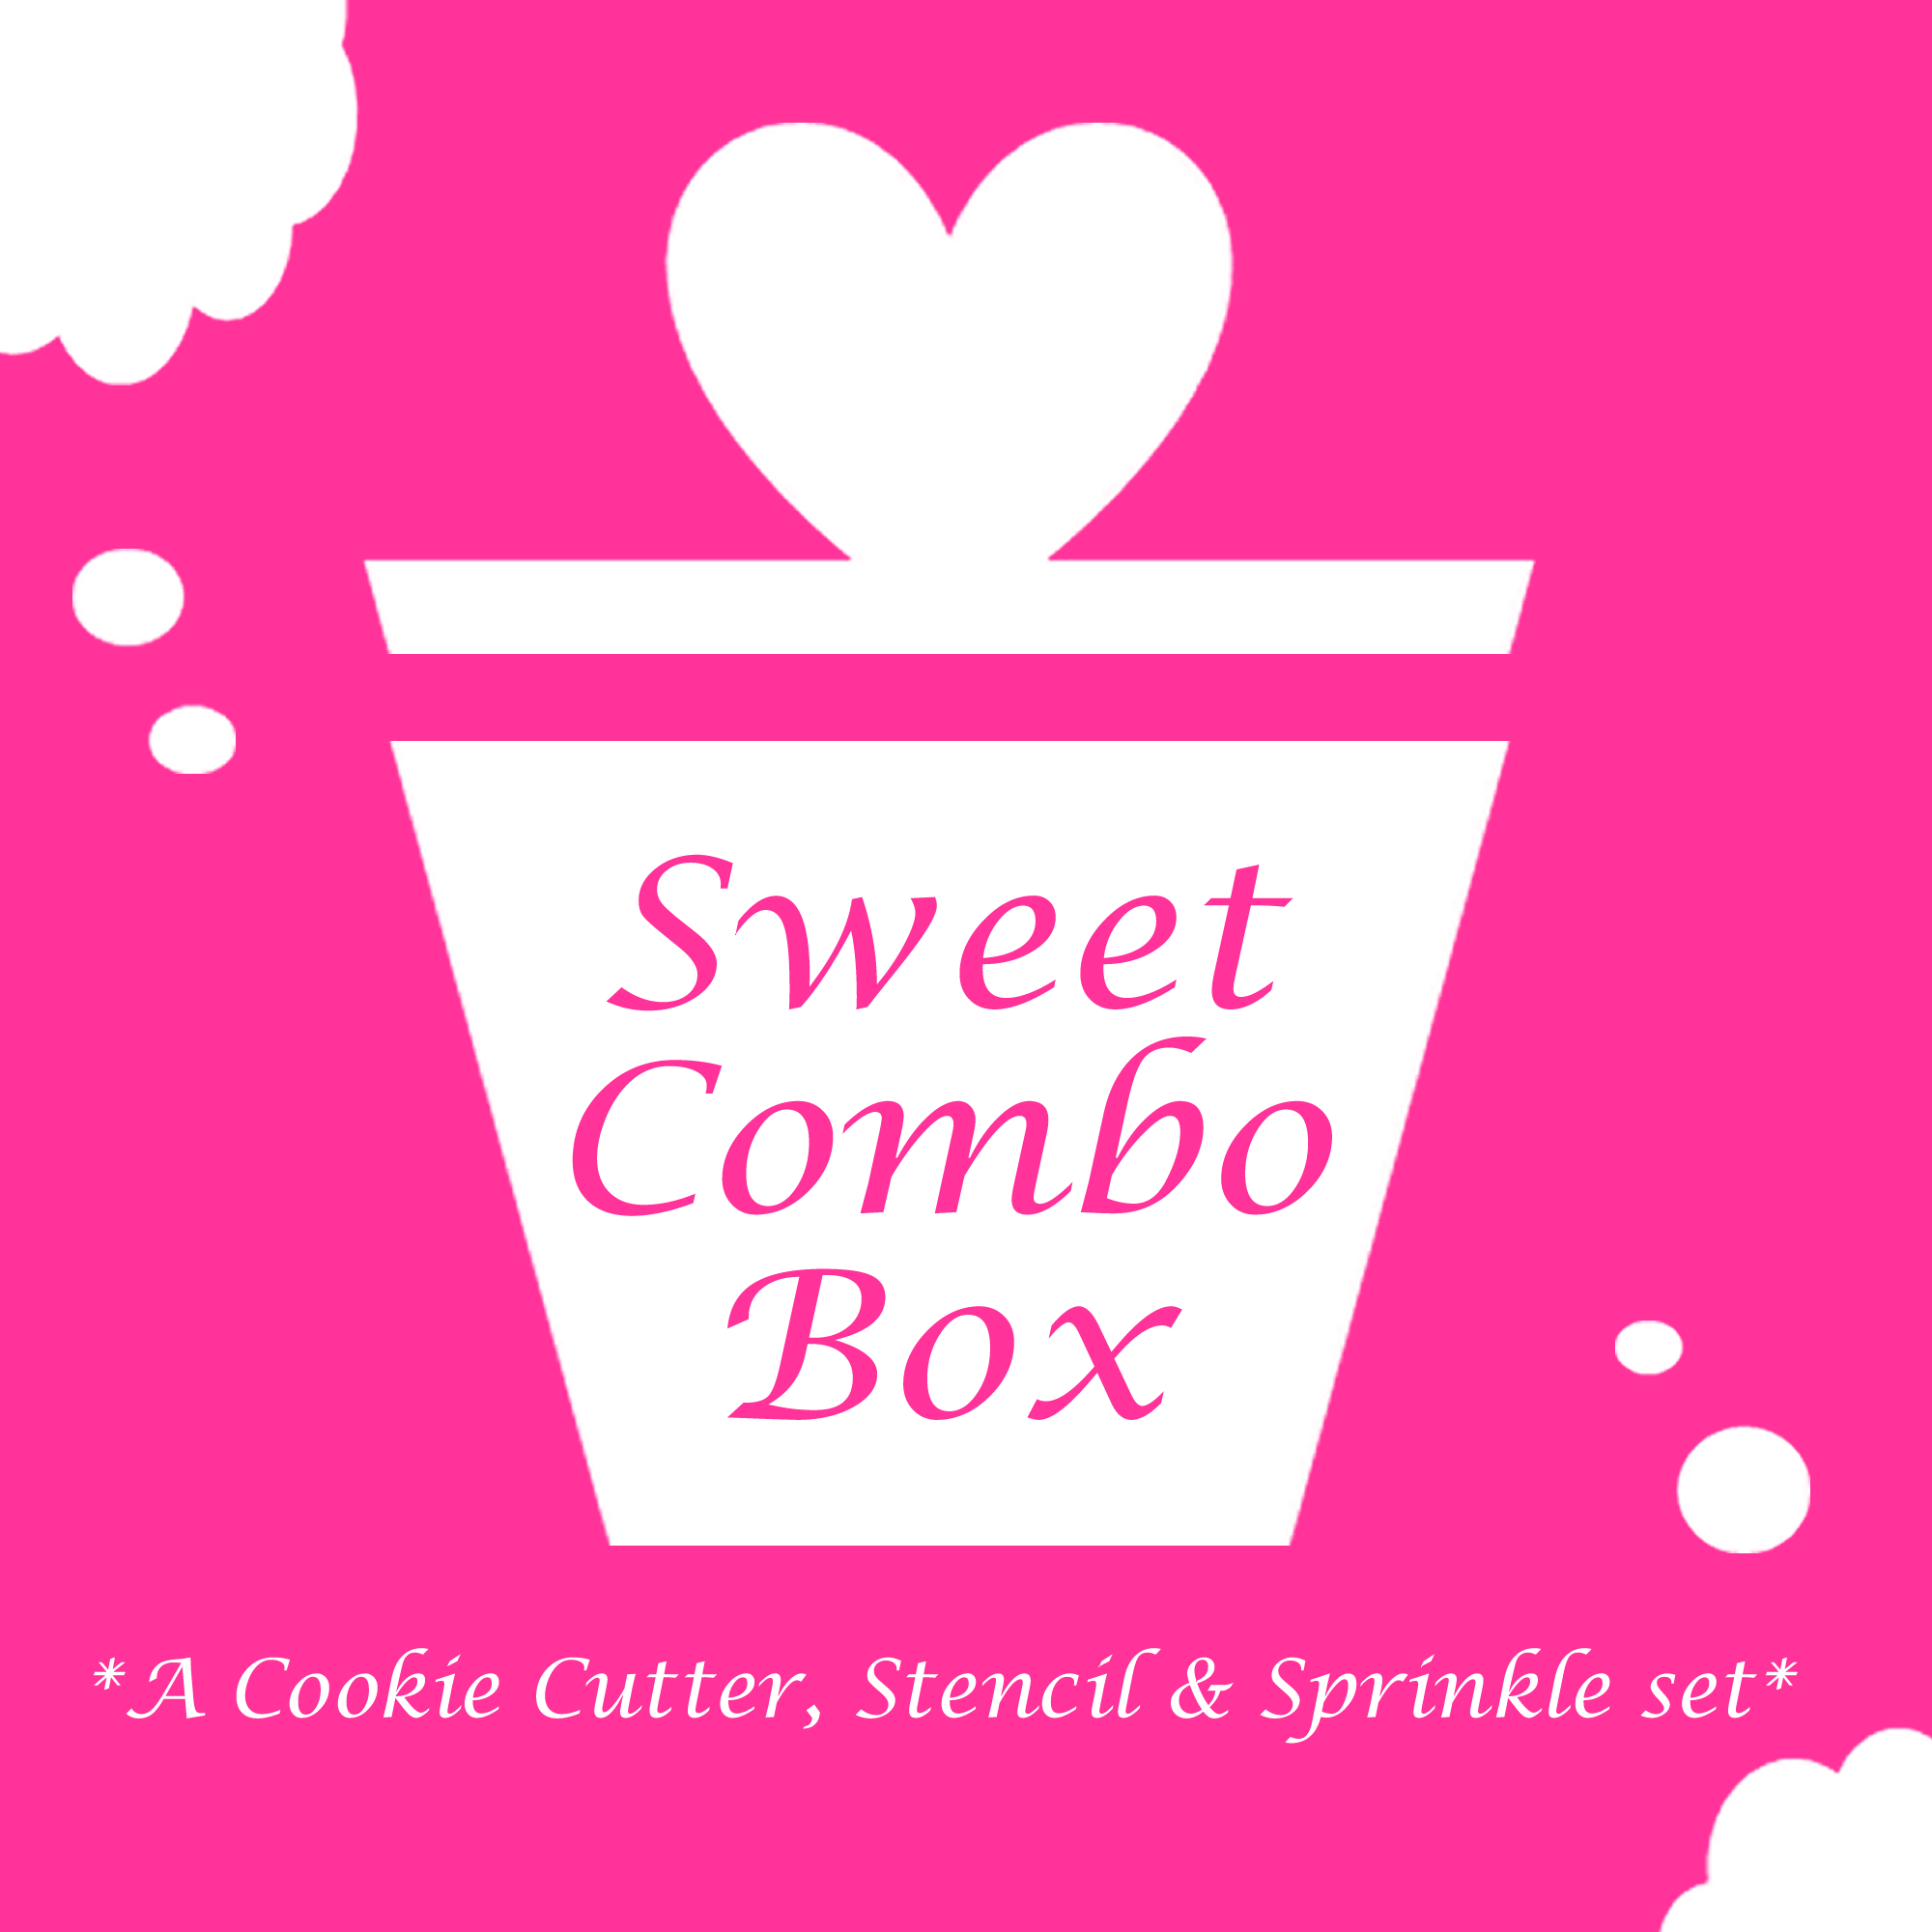 Sweet Combo Box - March 2017